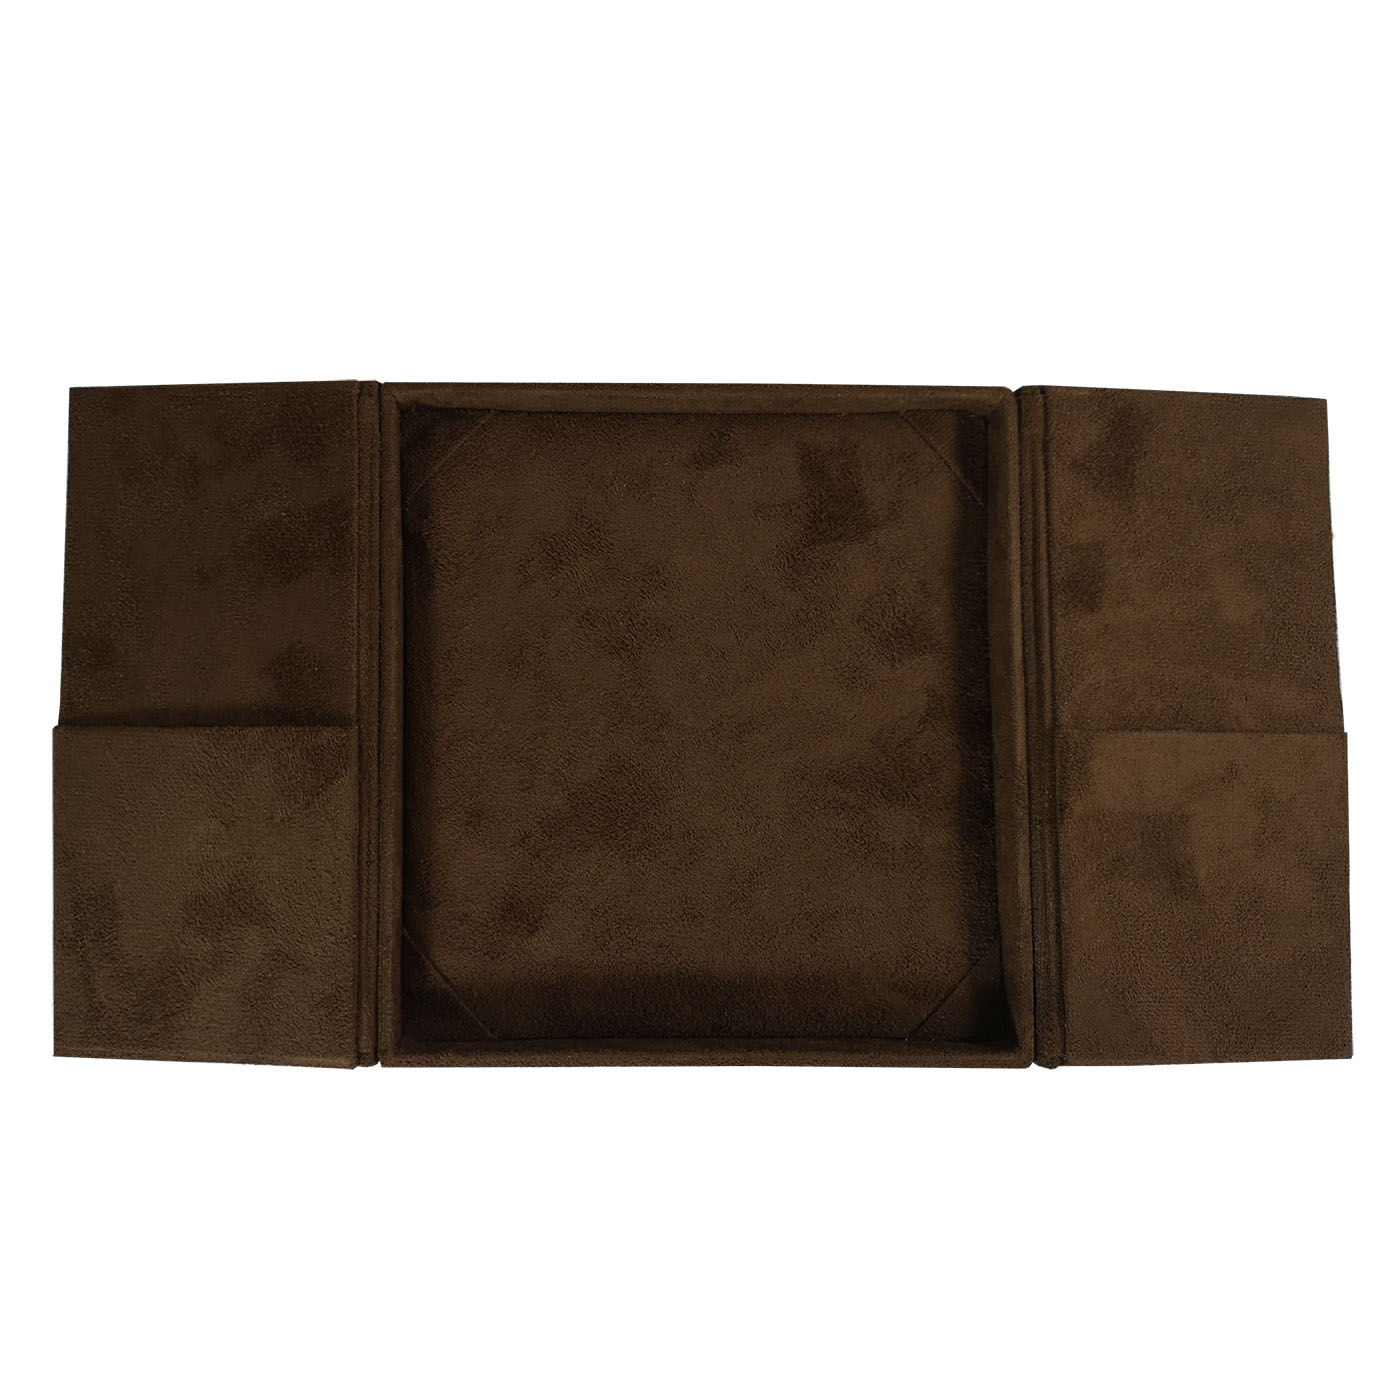 Luxury brown suede box